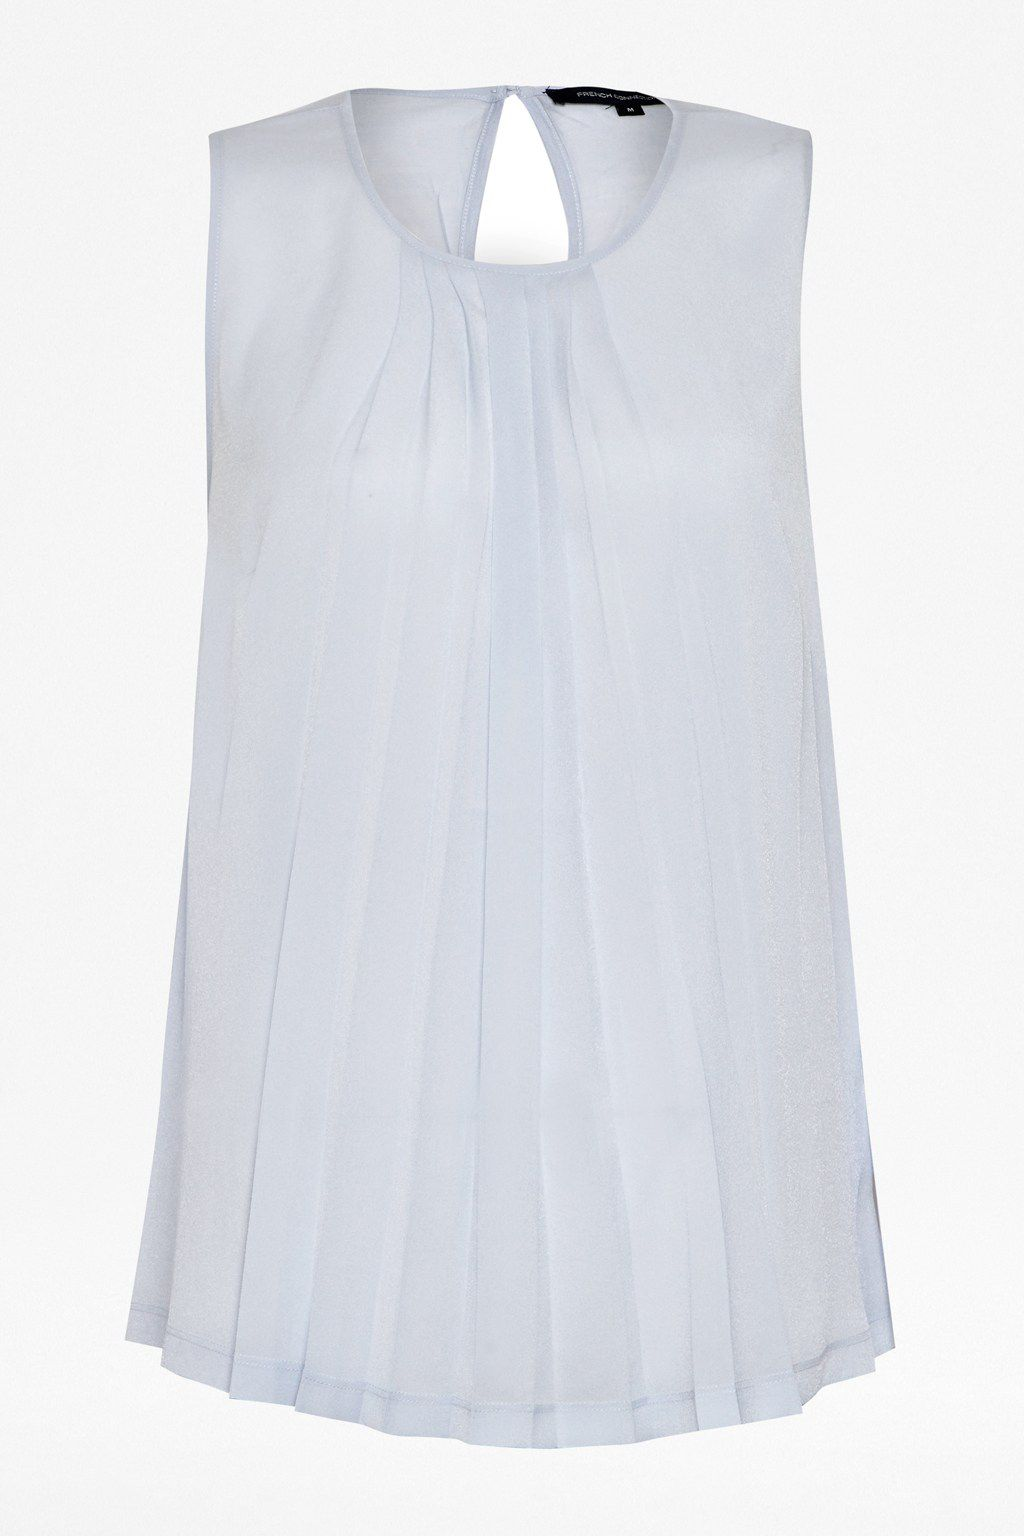 Polly plains pleats short sleeve top